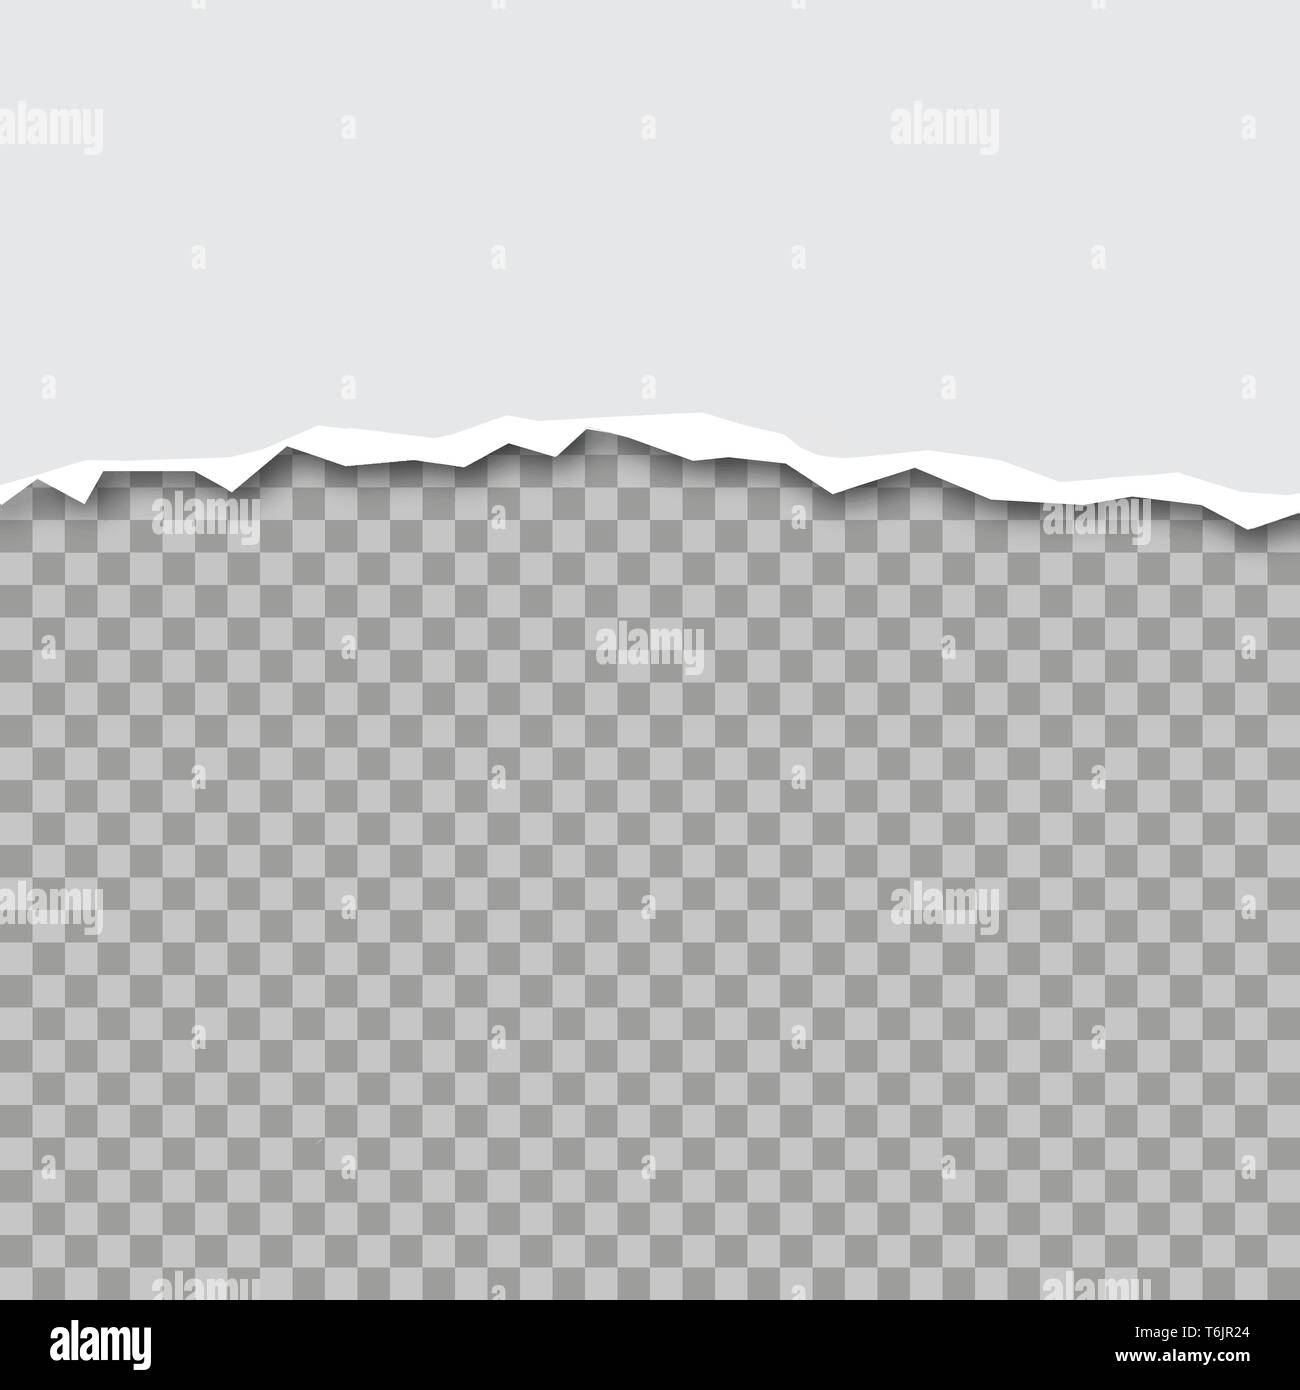 Vector illustration of ripped paper with transparent background